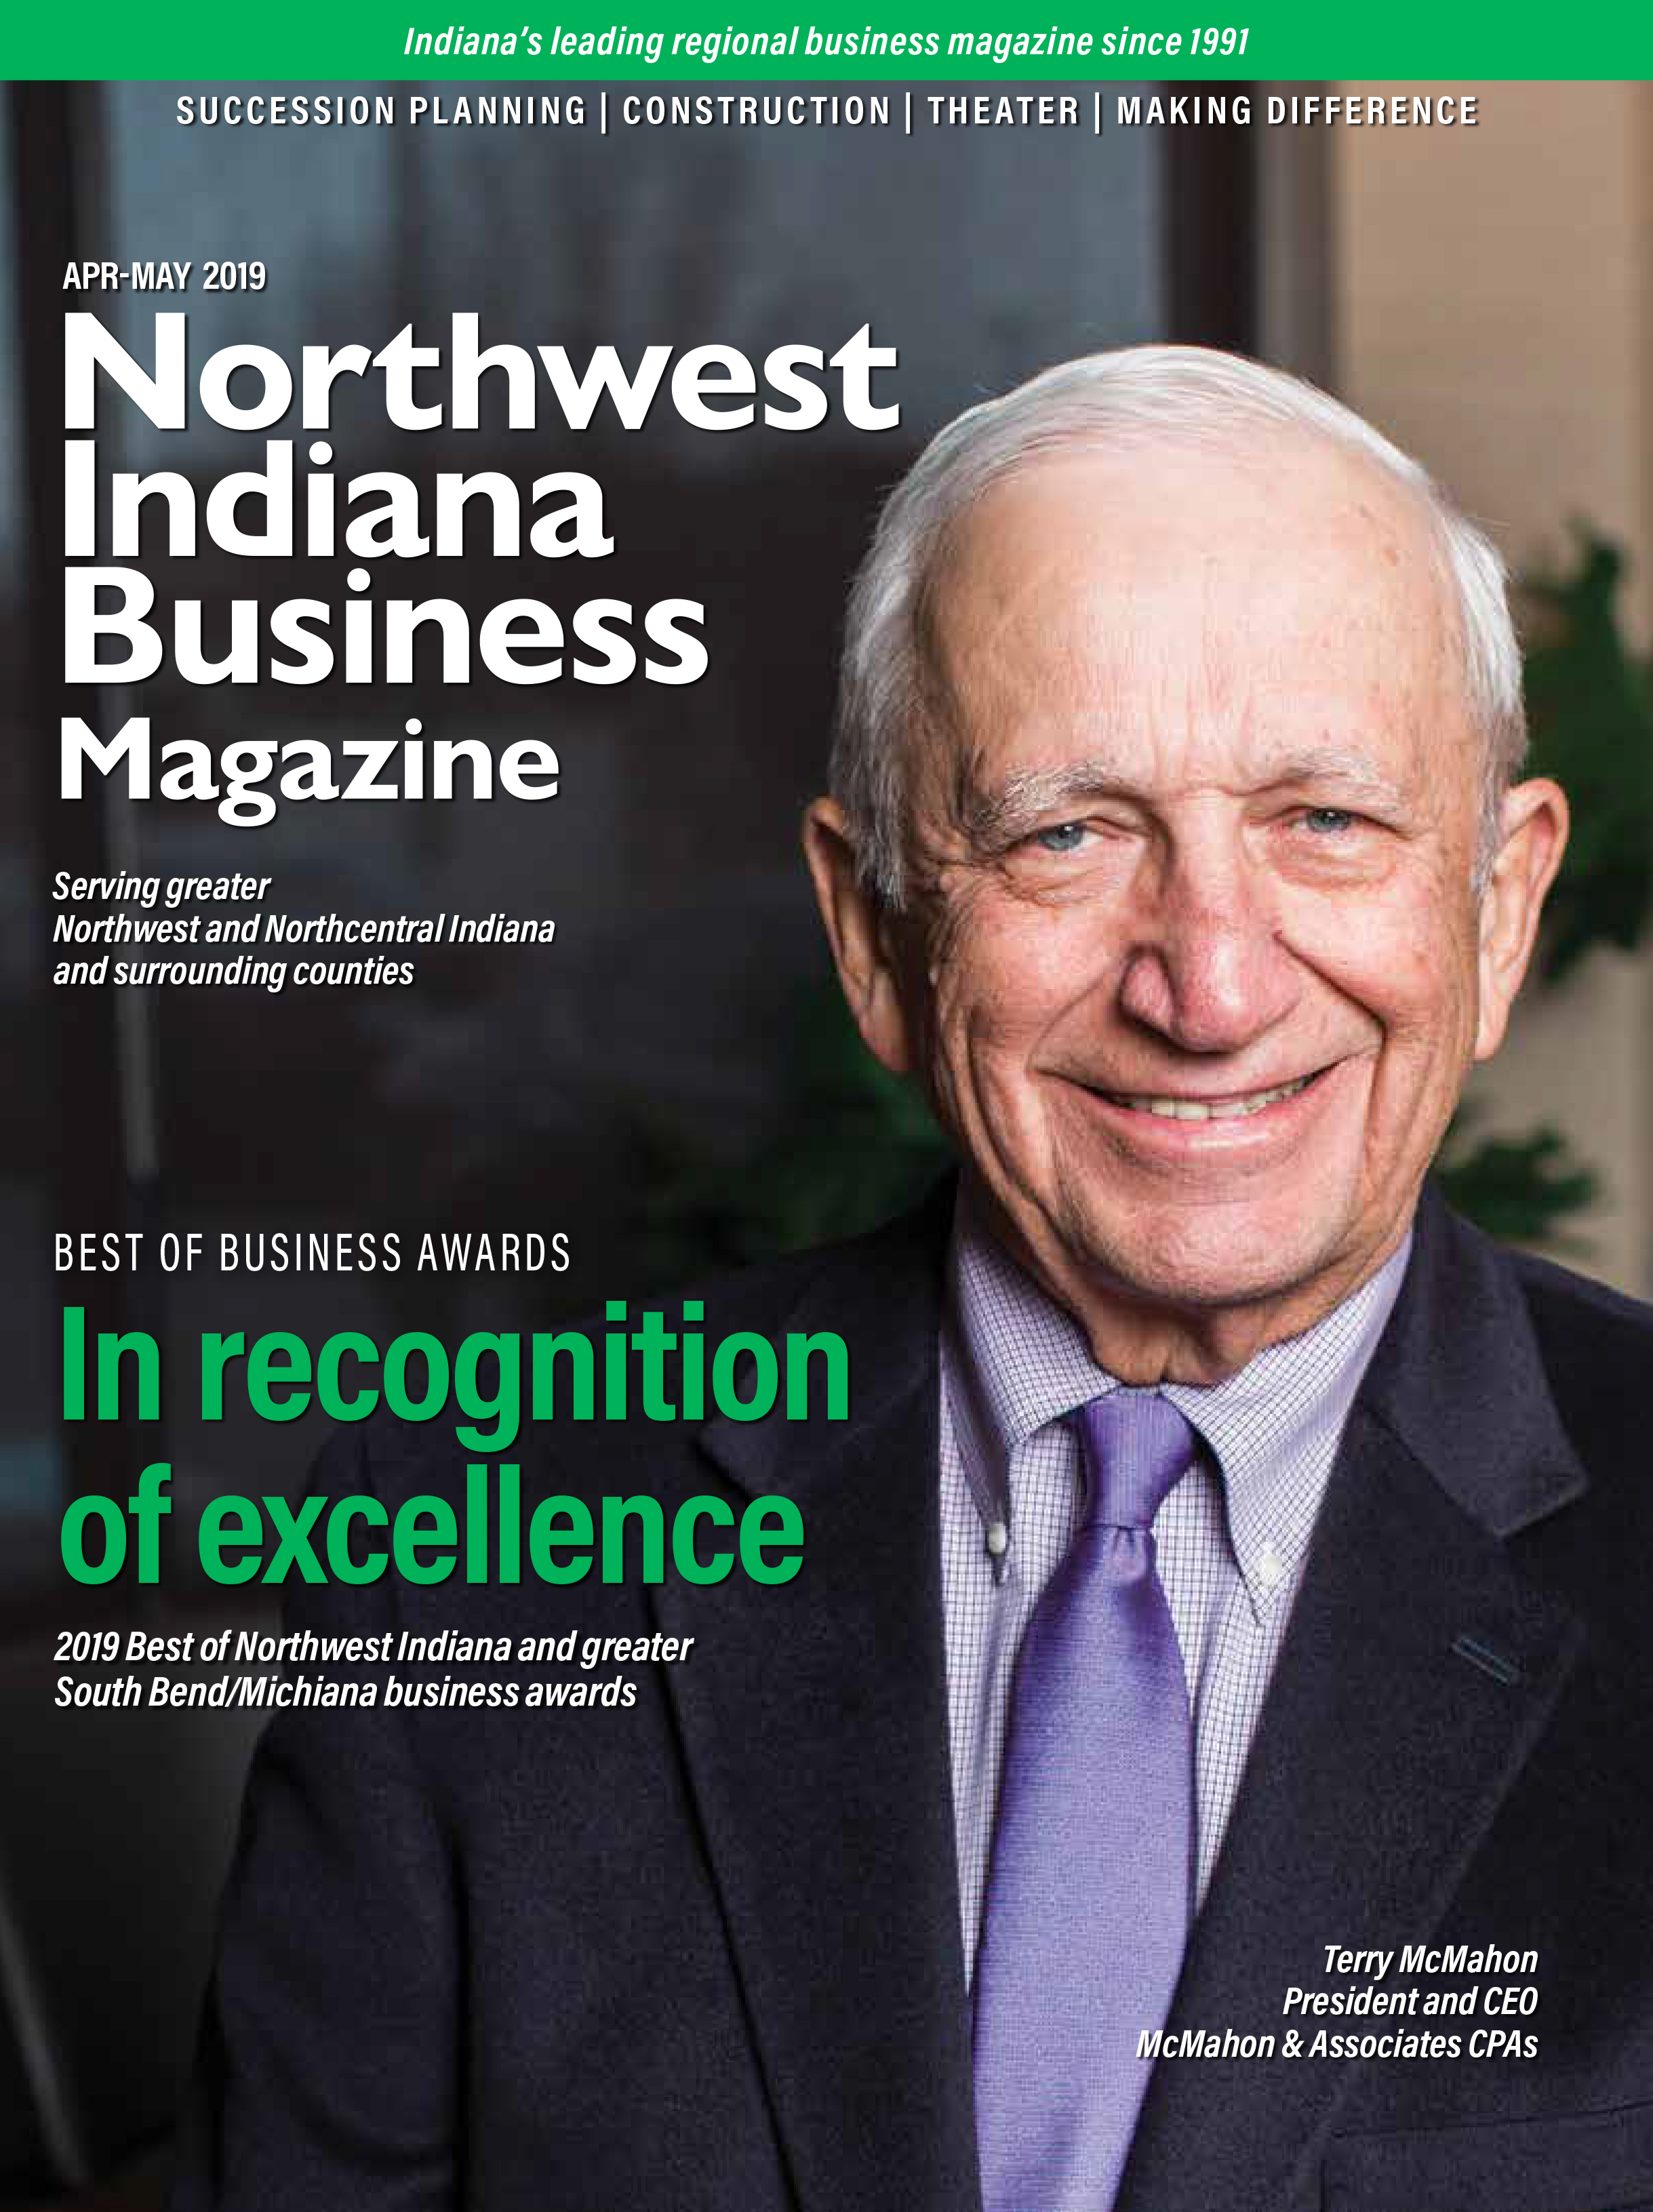 Northwest Indiana Business Magazine Apr-May 2019 issue